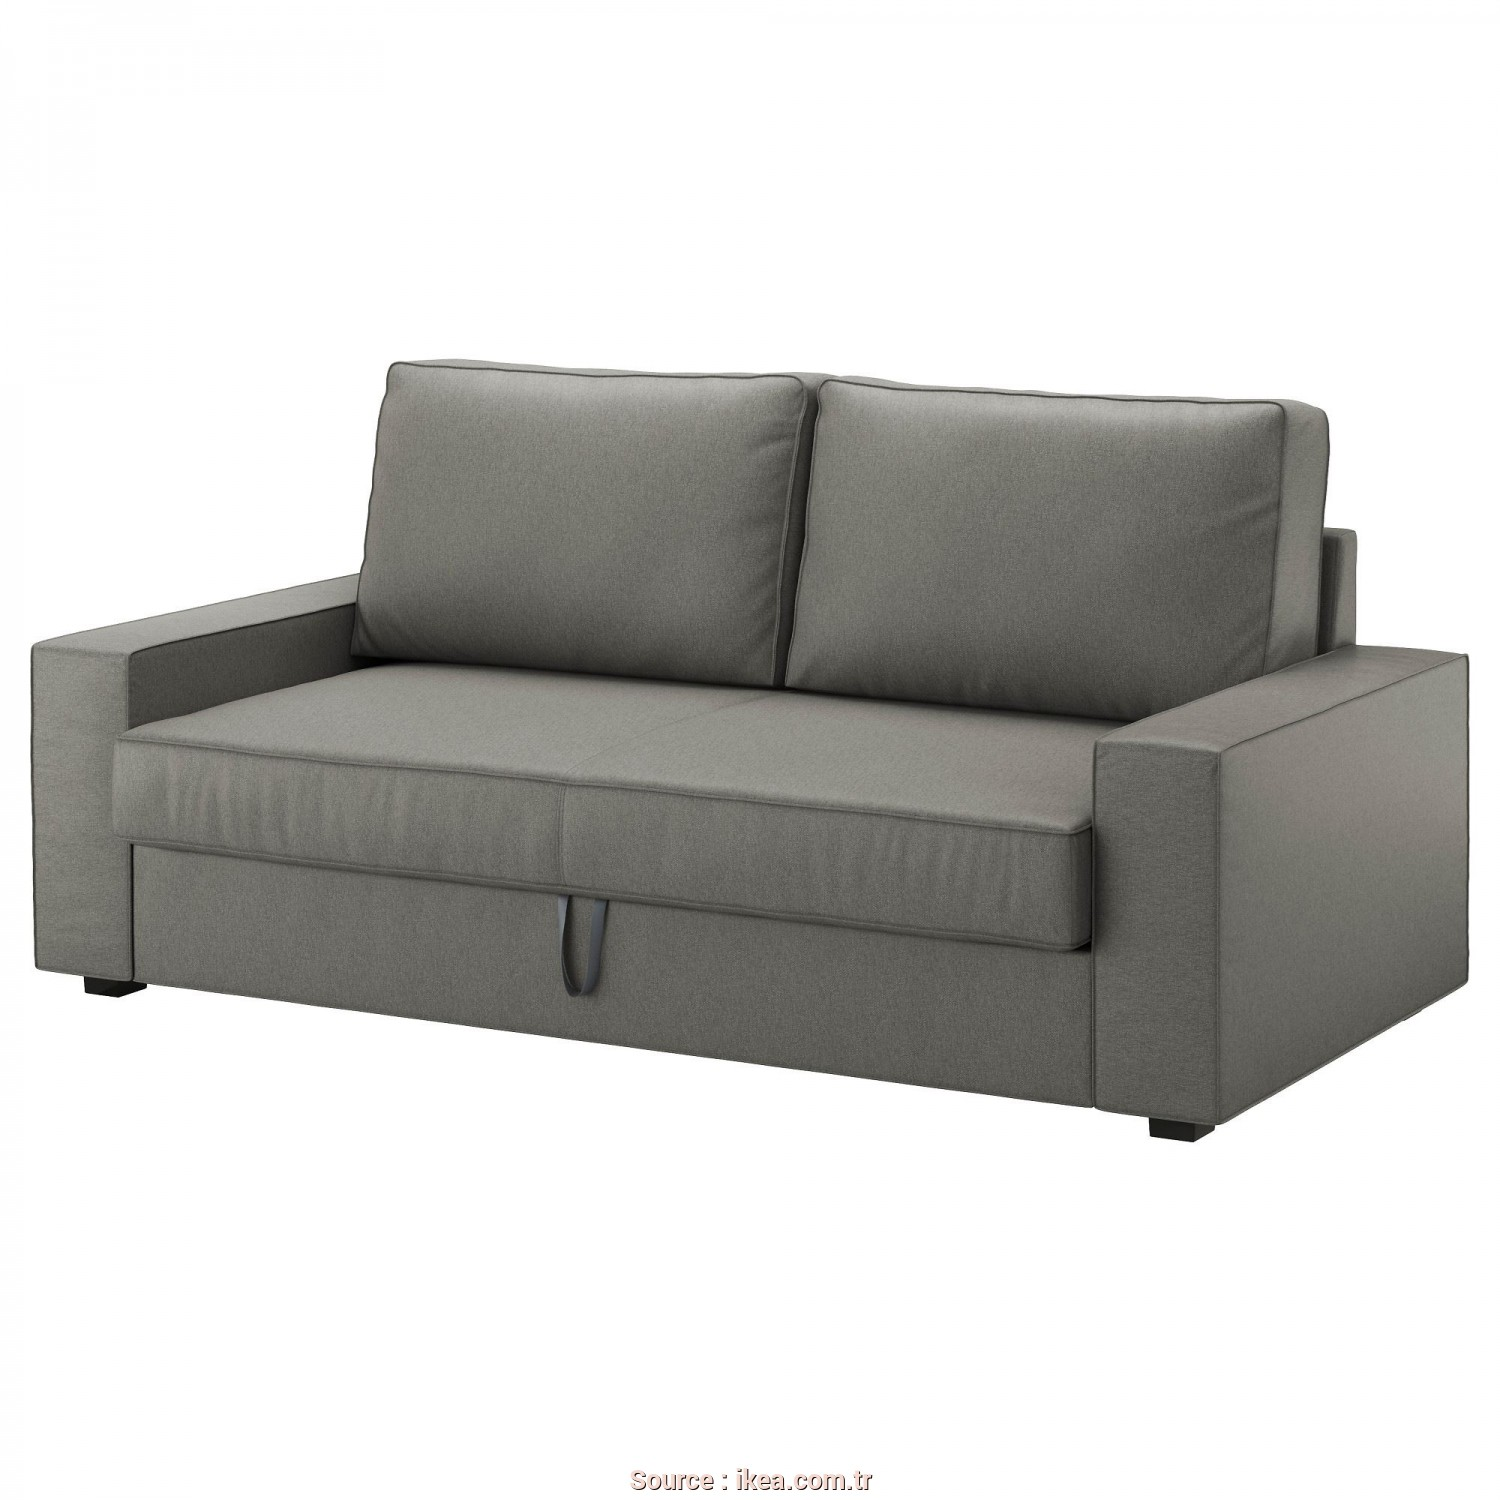 Vilasund Ikea Instructions, Loveable VILASUND/MARIEBY 3-Seat Sofa-Bed Borred Grey-Green, IKEA Living Room